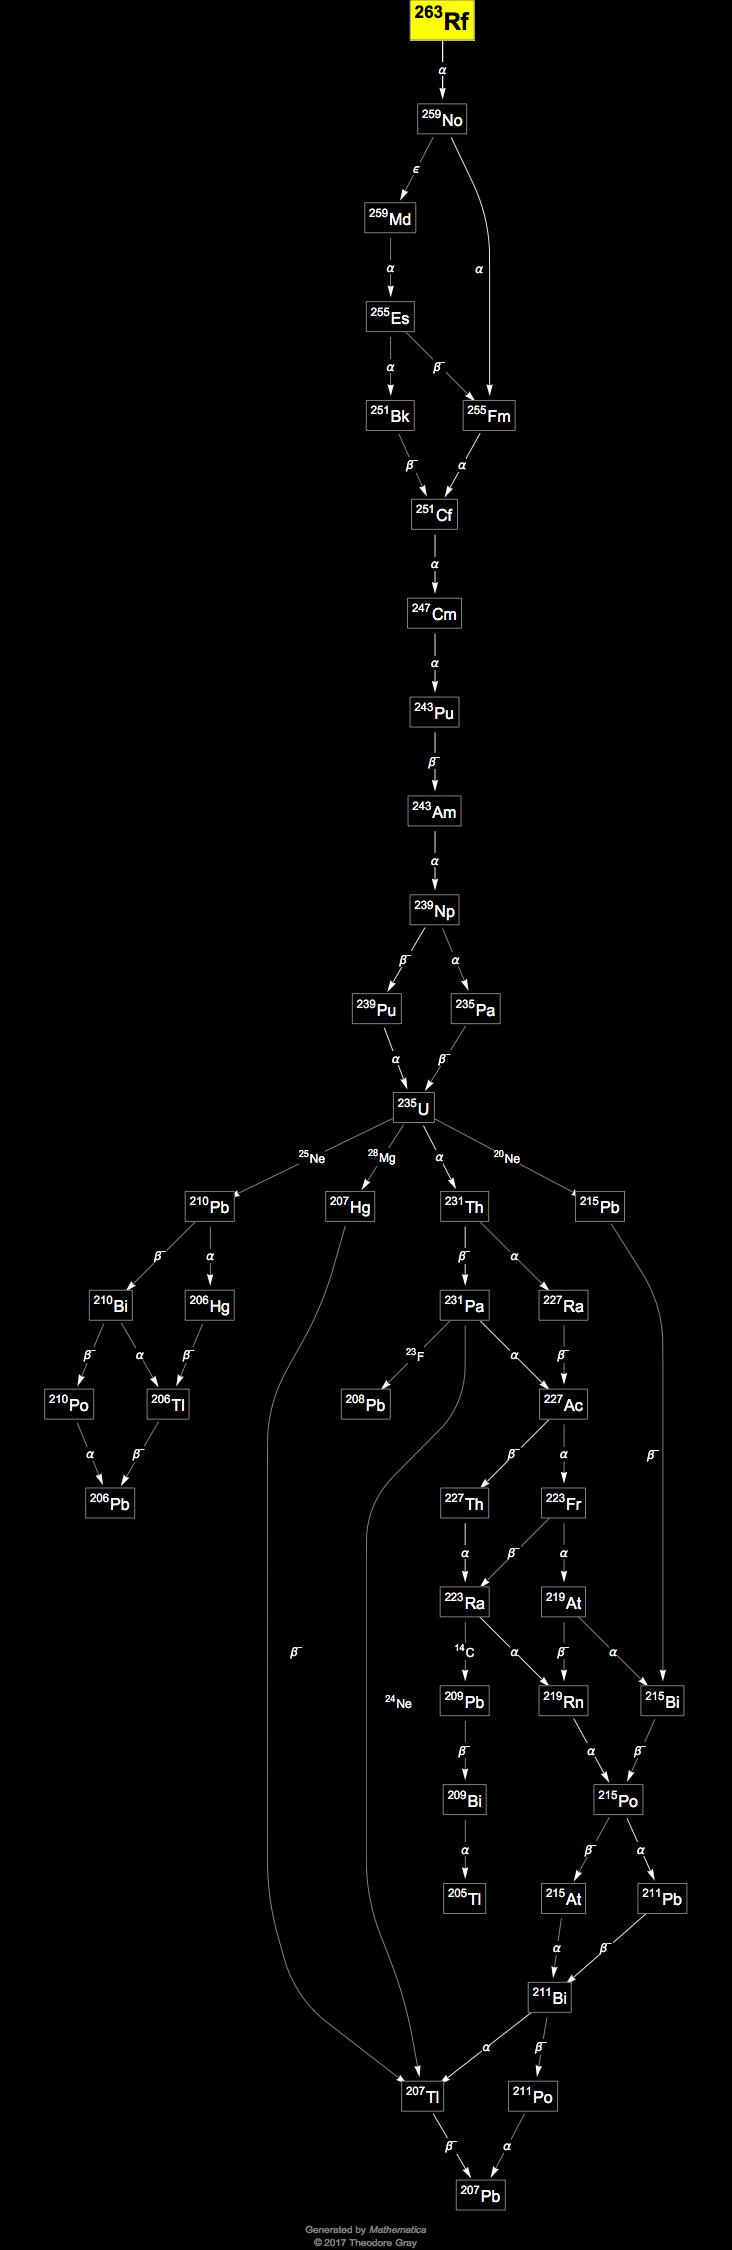 Isotope data for rutherfordium263 in the periodic table decay chain image generated by mathematicas graphplot and isotopedata functions from wolfram research inc gamestrikefo Image collections